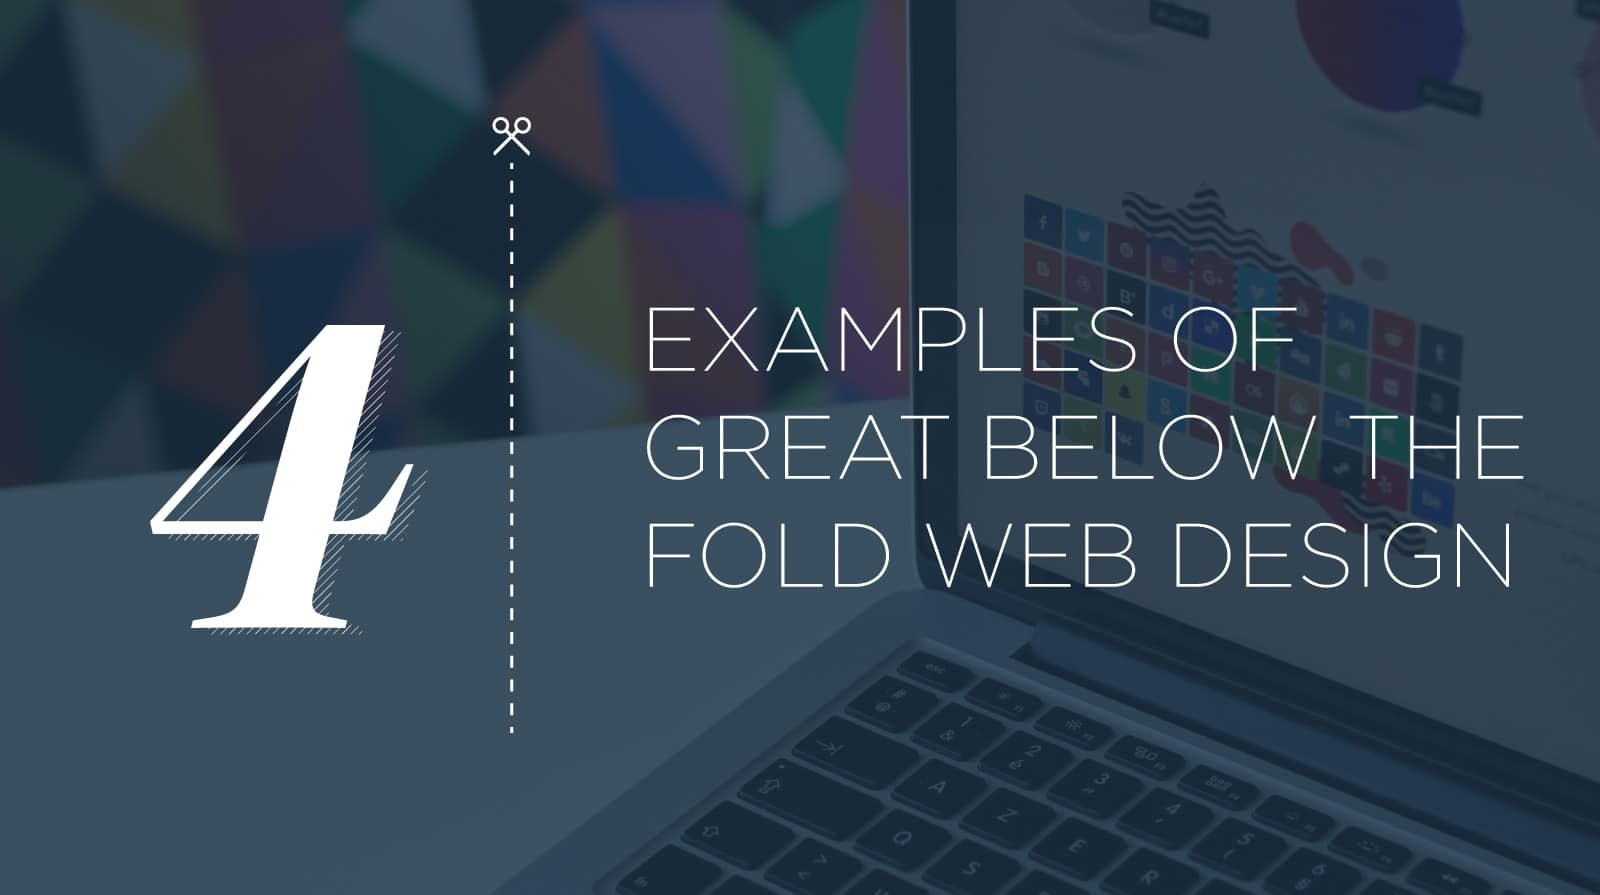 4 Examples of Great Below the Fold Web Design